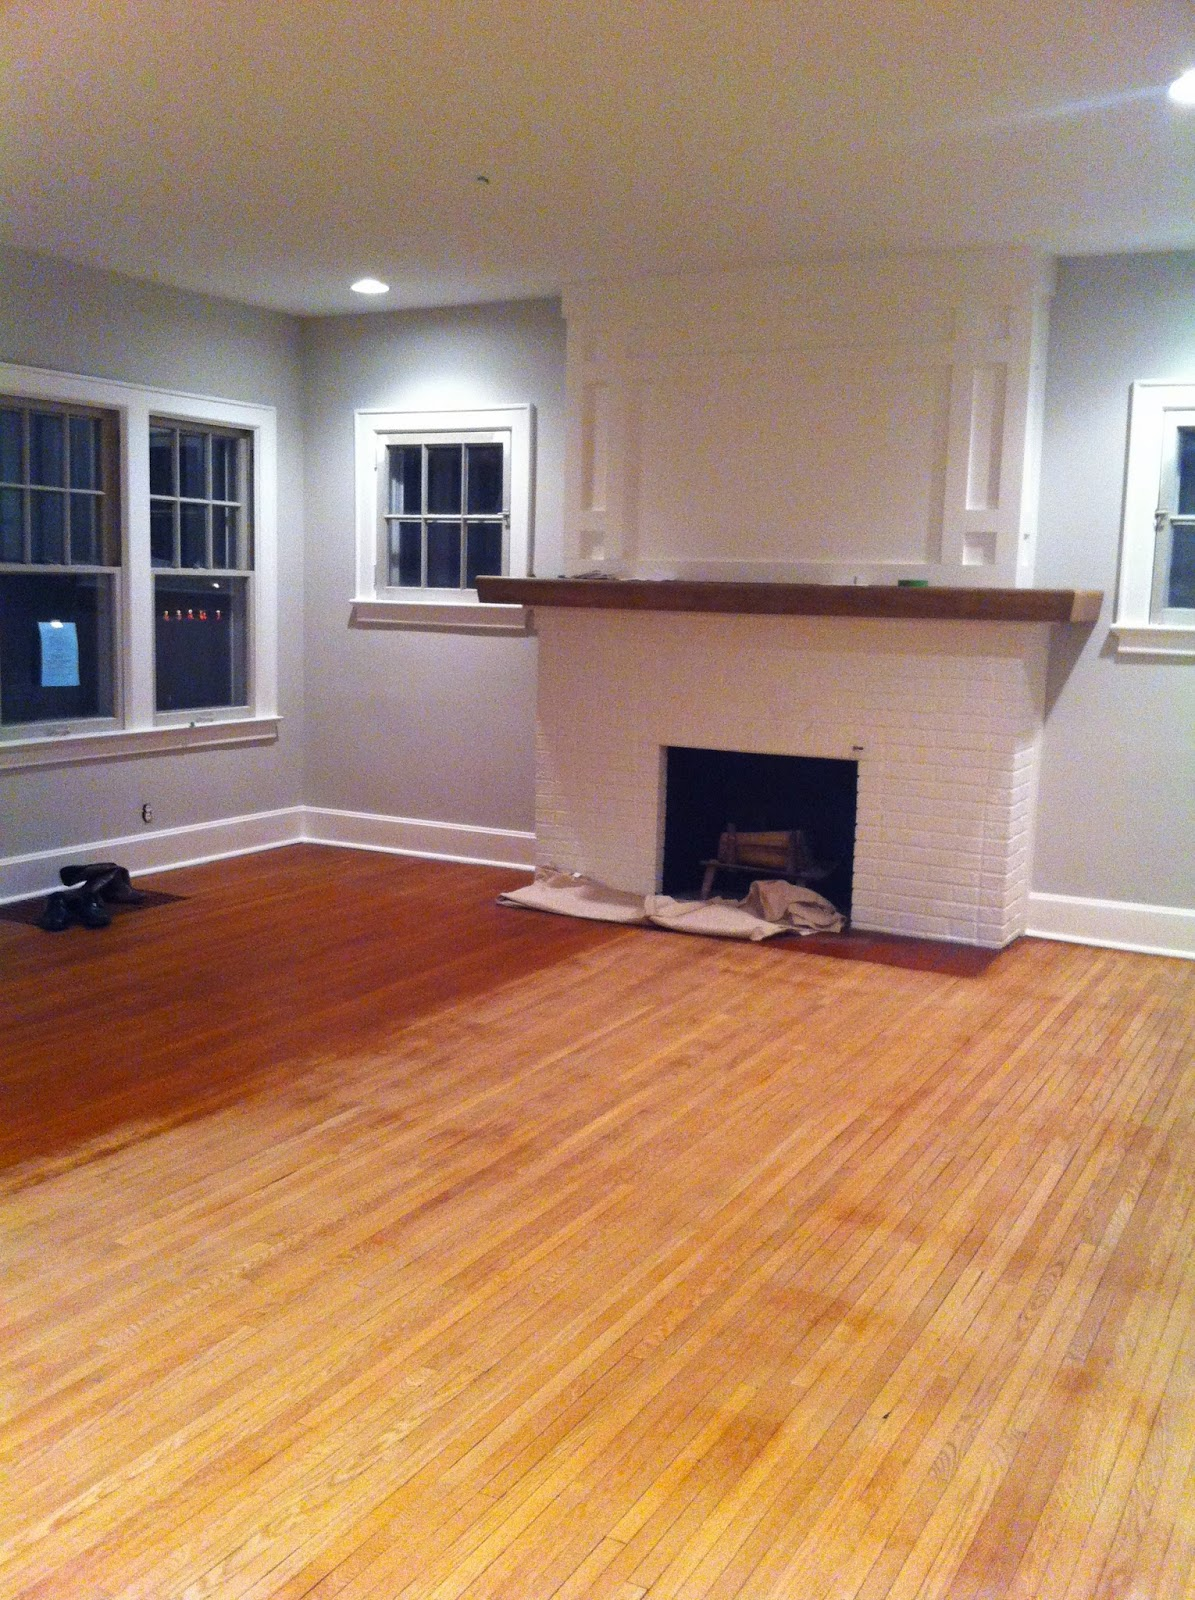 Refinishing hardwood floors refinishing hardwood floors for Hardwood floors knoxville